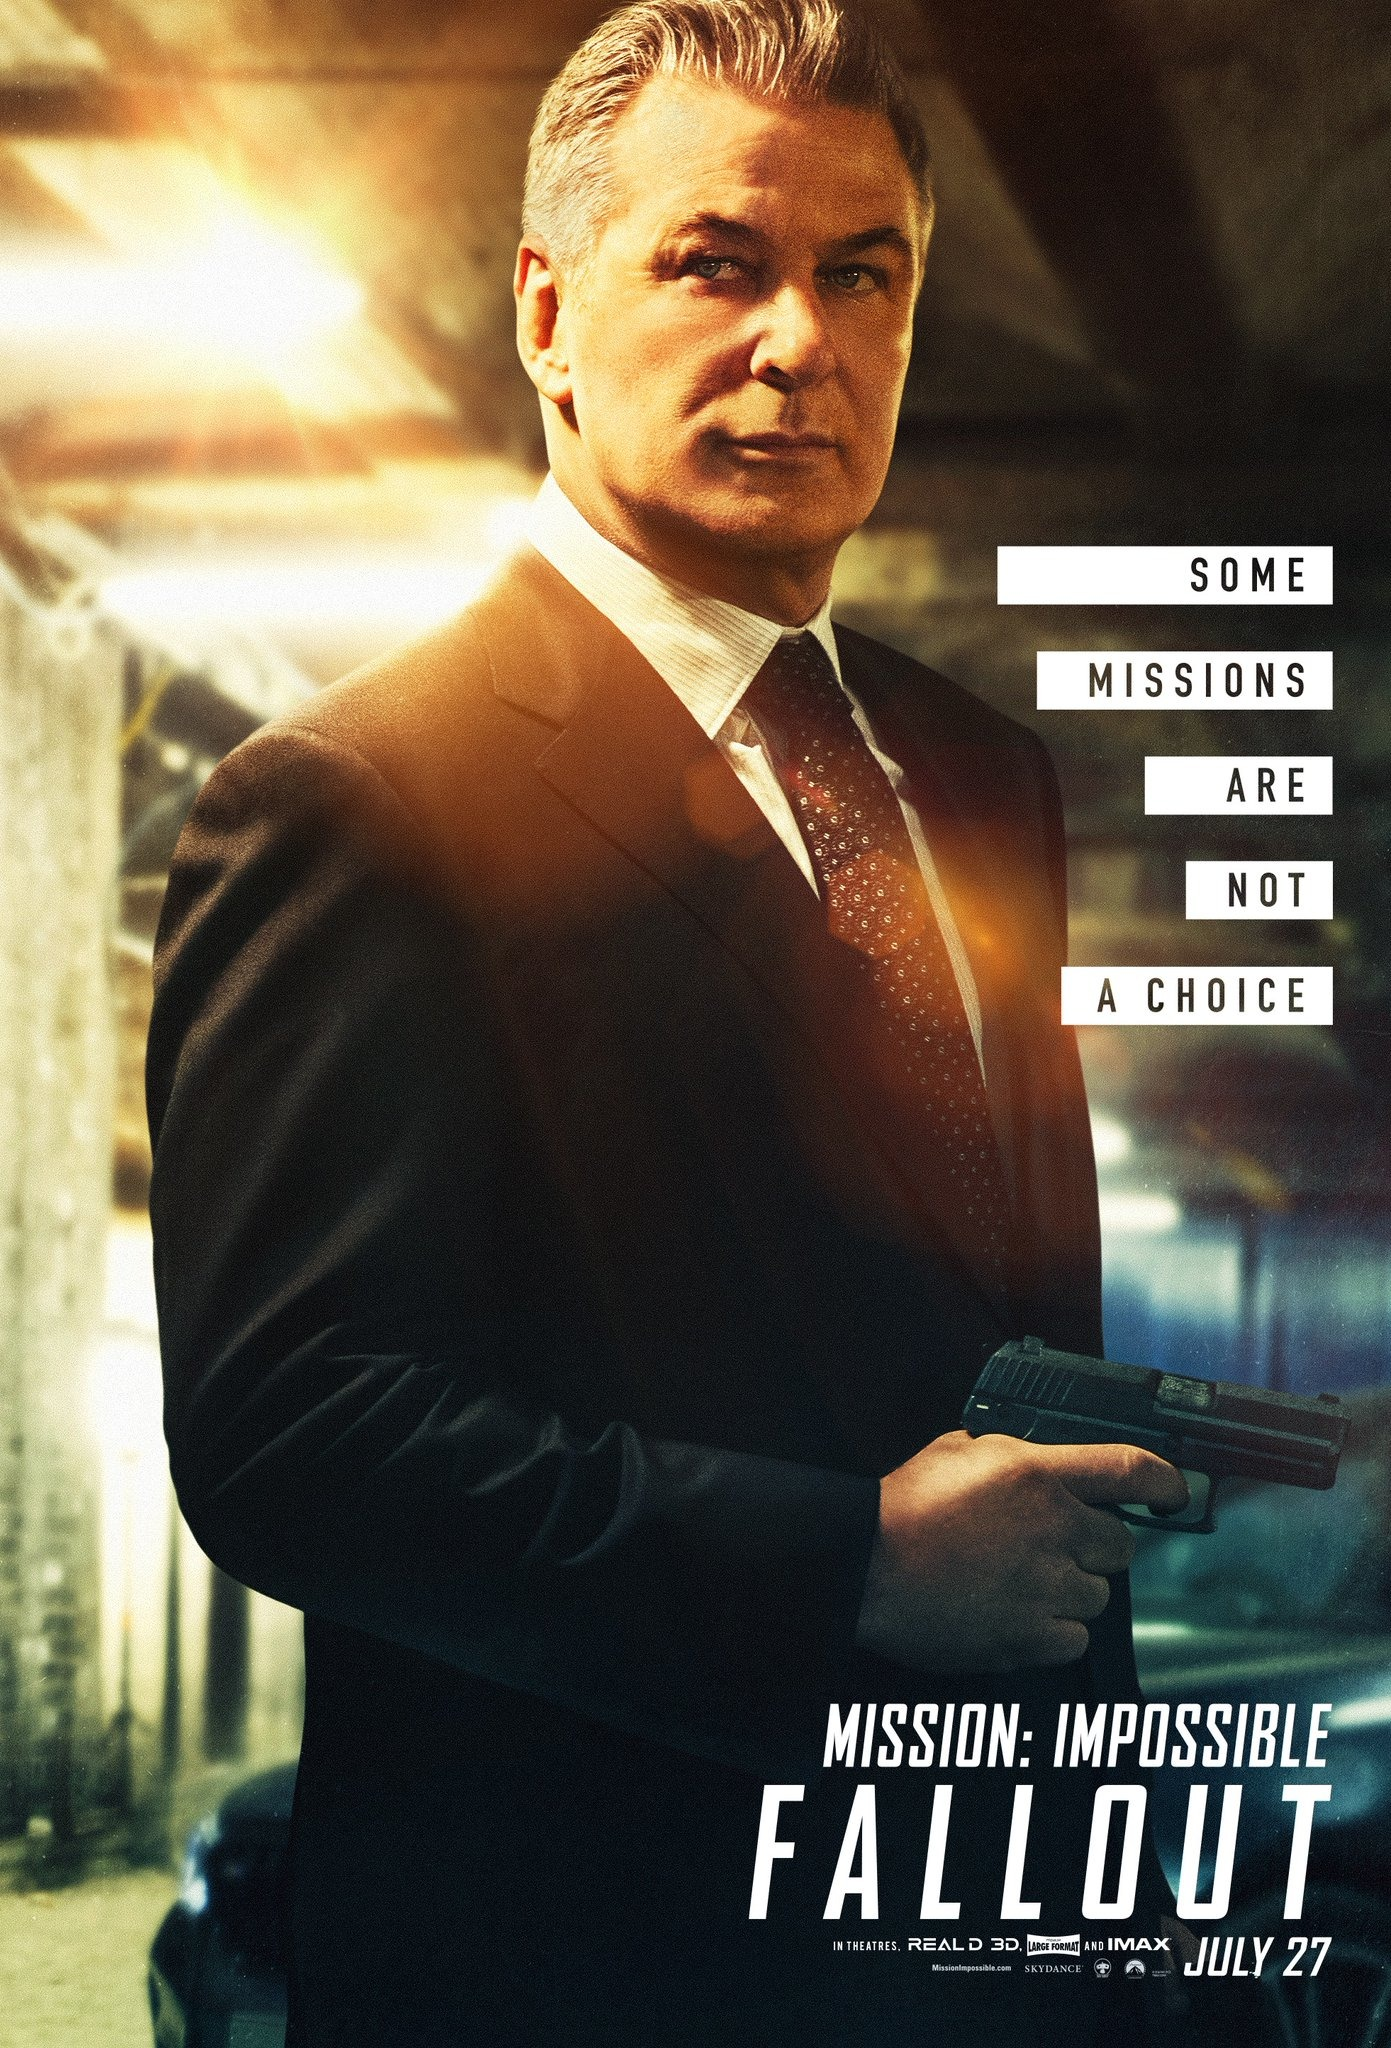 Mission Impossible Fallout poster 13.jpg